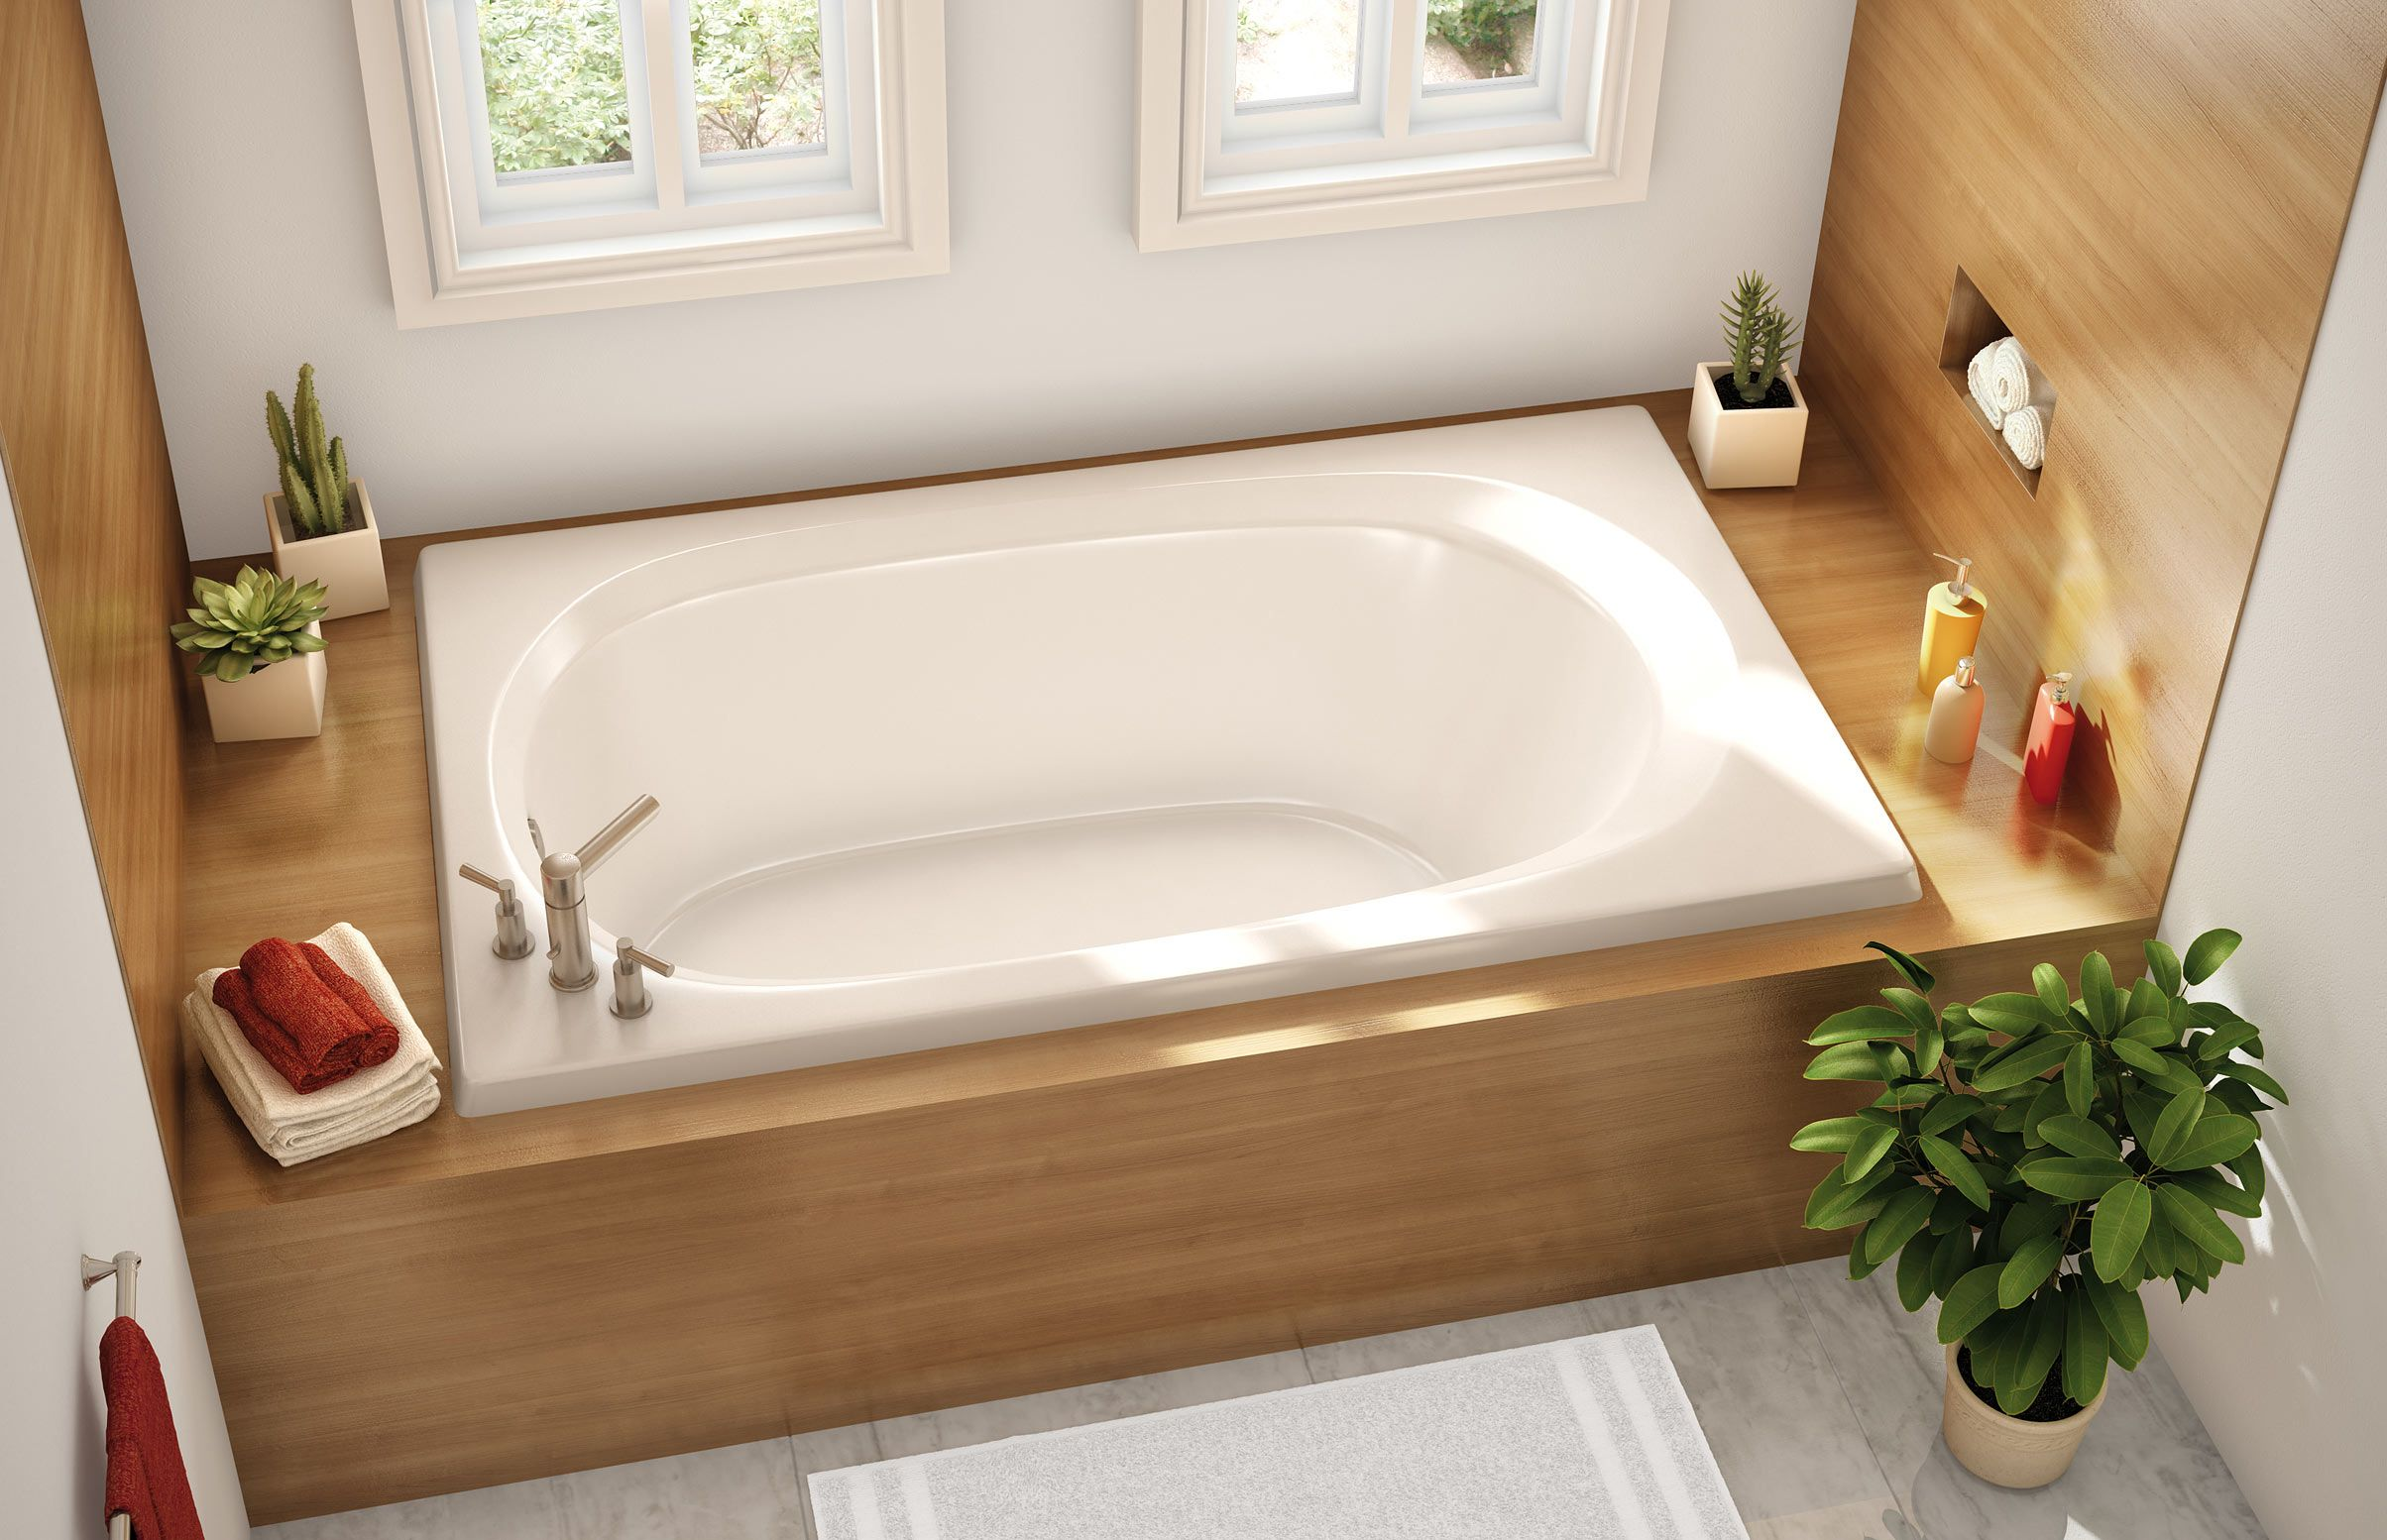 ACOV 4260 Drop-in Bathtub - Aker by MAAX | Kitchen & Bath ...